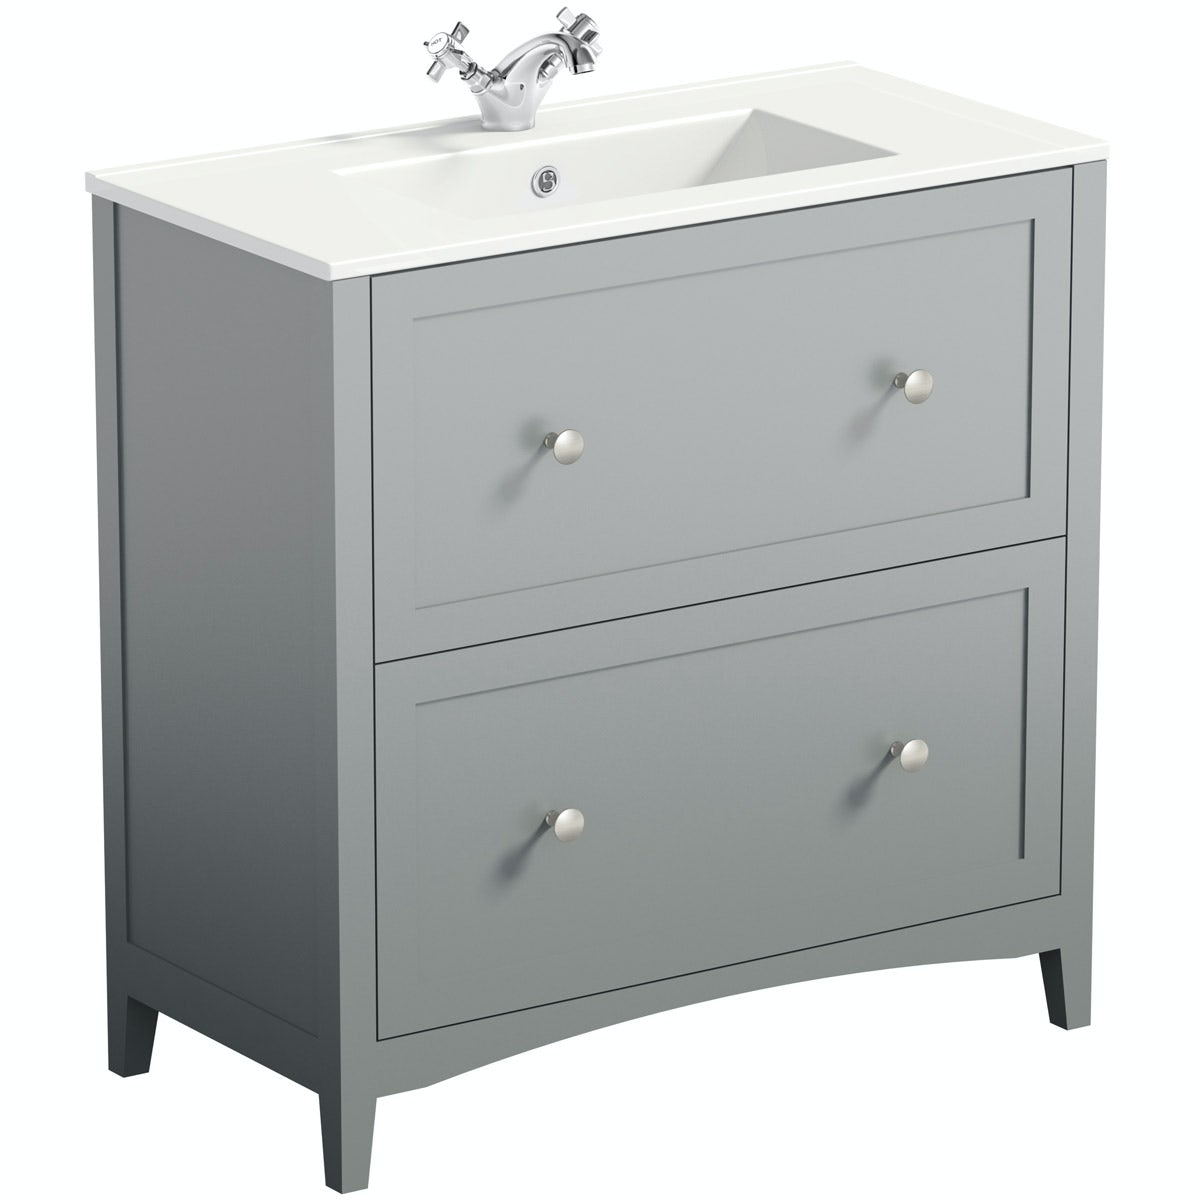 Camberley Grey 800 Floor Drawer Unit & Basin